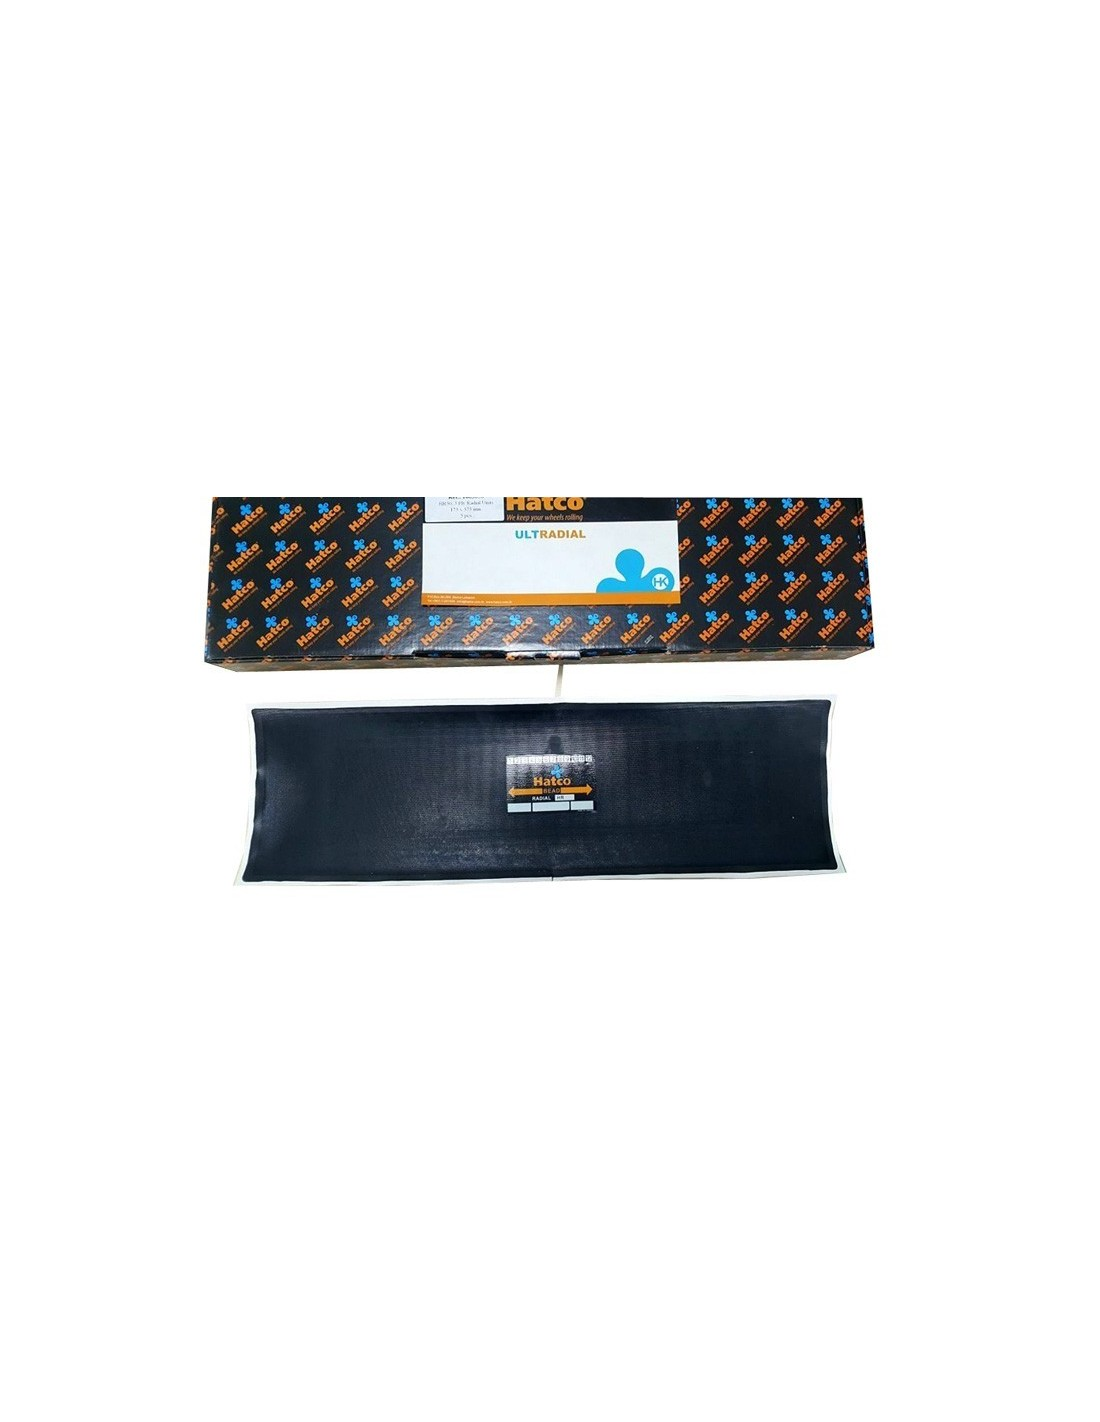 Parches radiales neumáticos tubeless 175x575 mm HR50